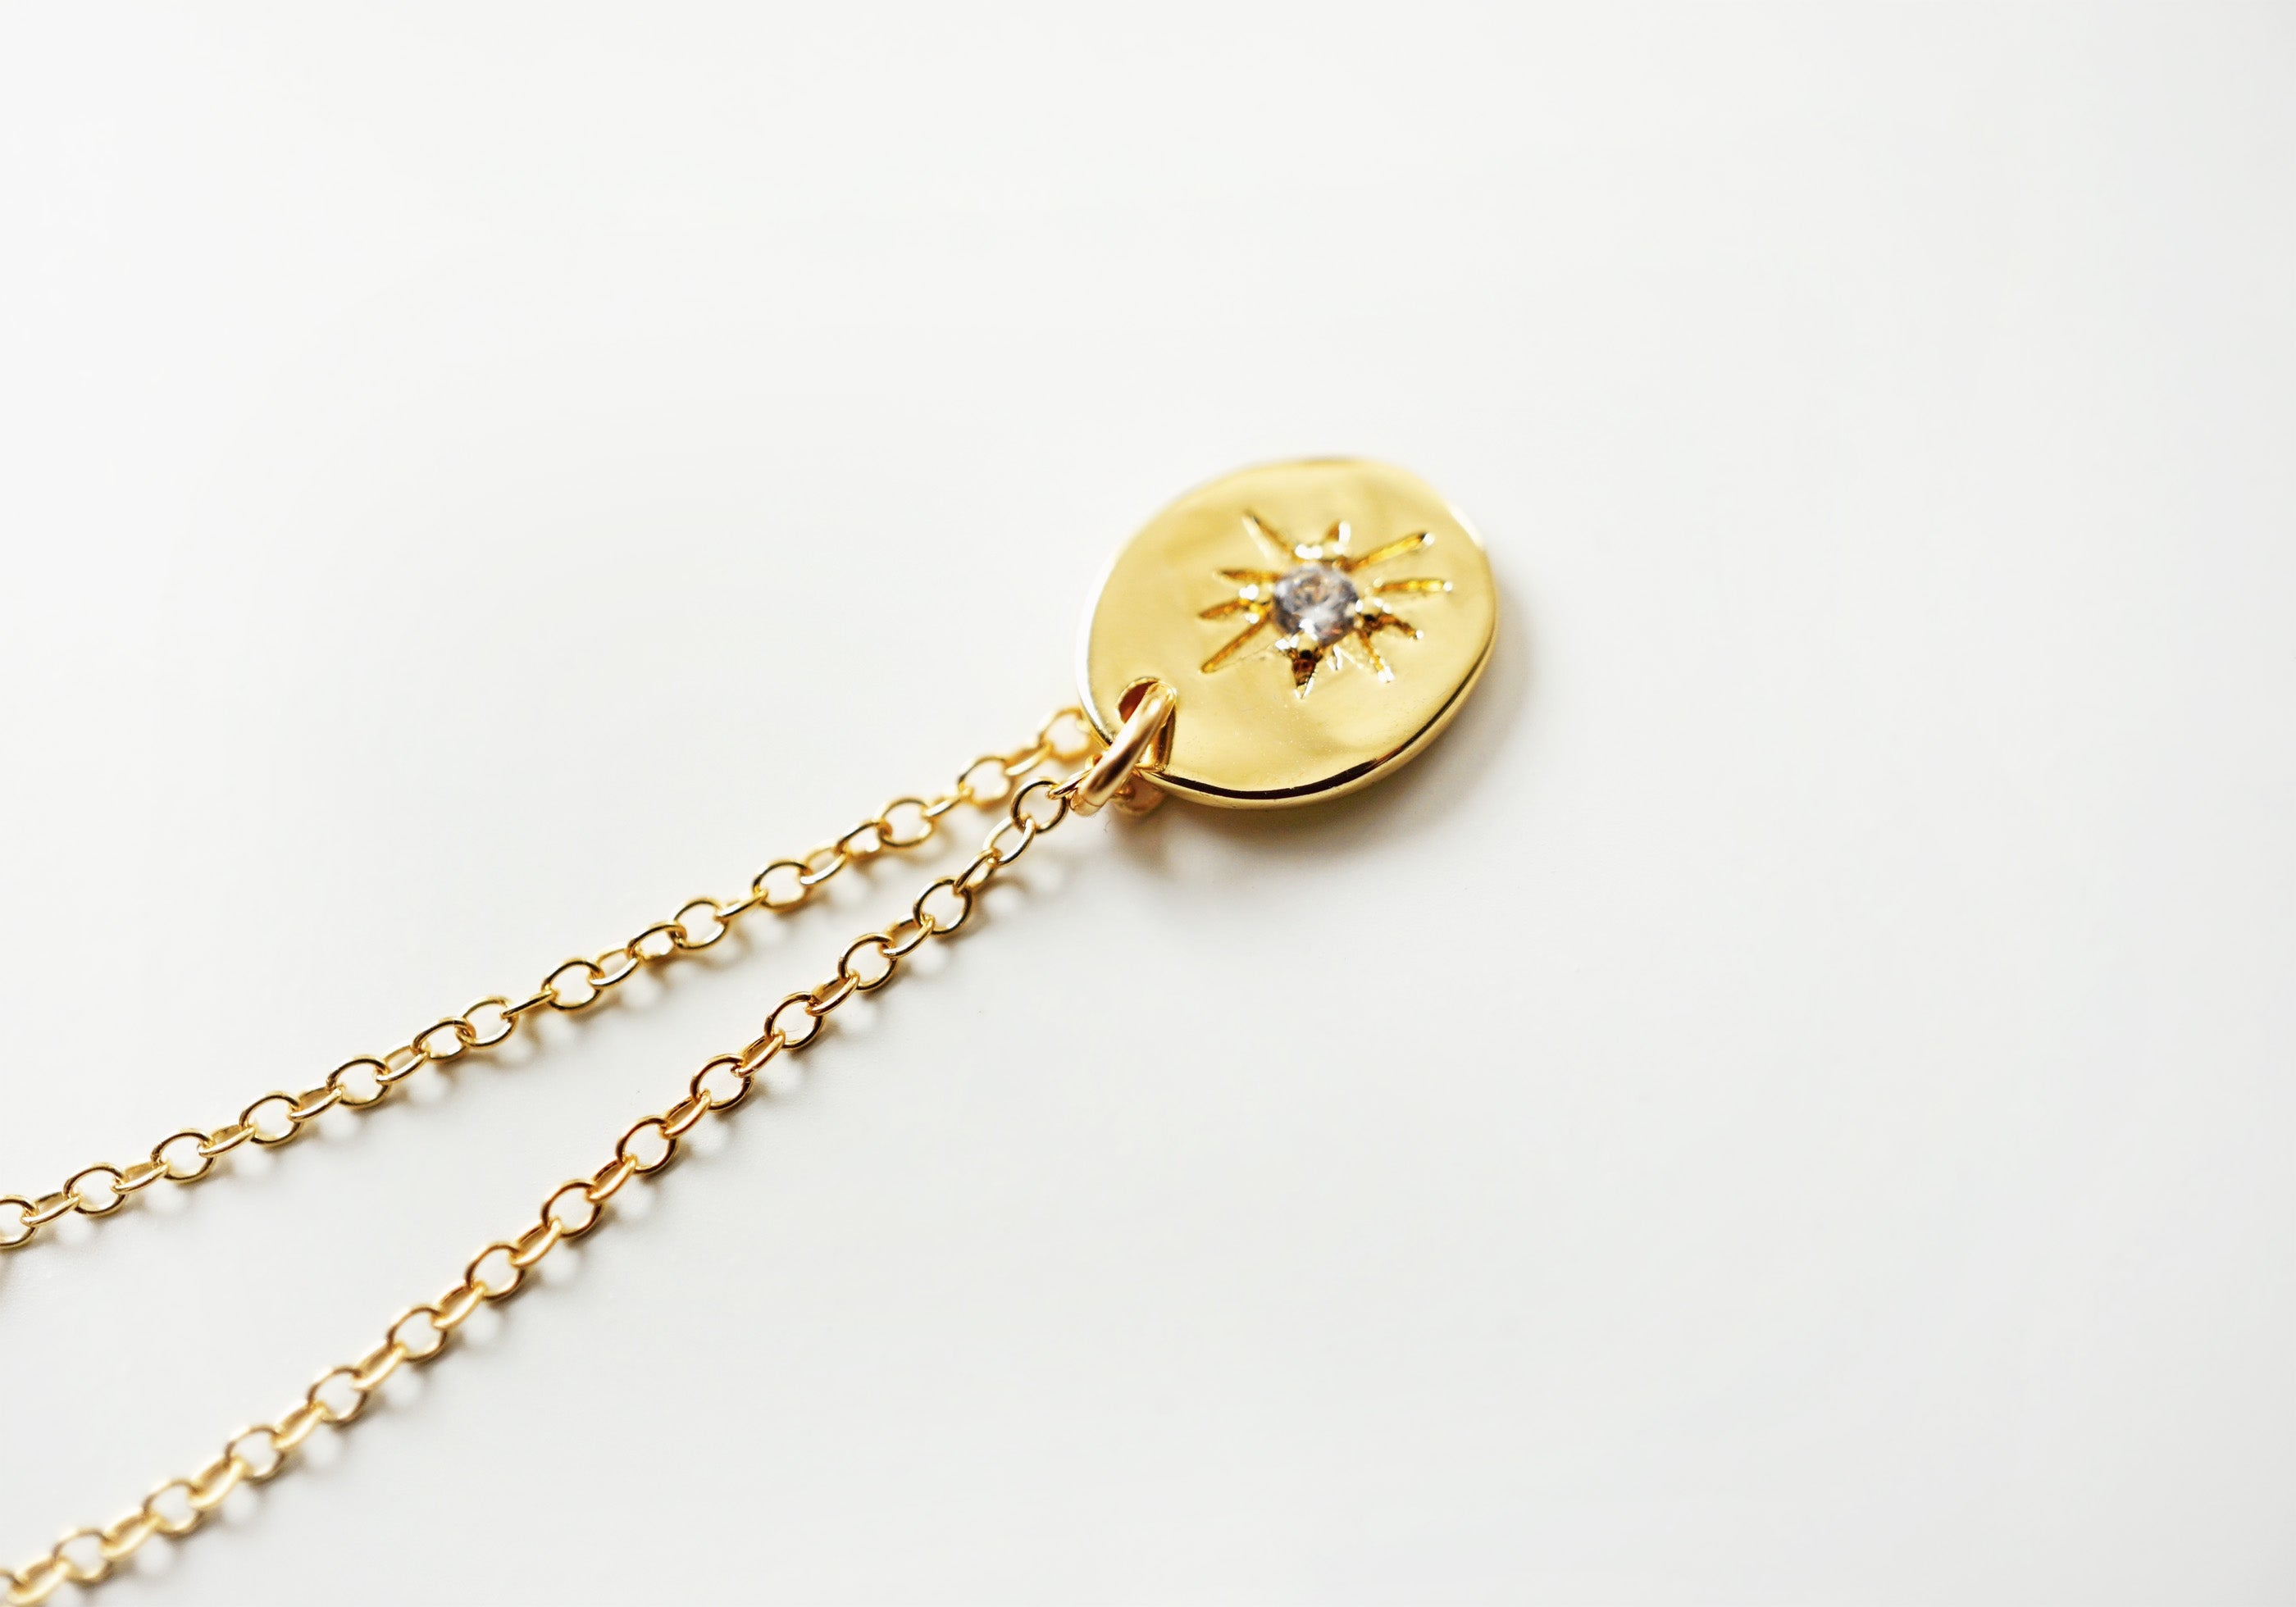 NORTH ✶ Celestial Collection ✶ Dainty Starburst Necklace + Lava Charm